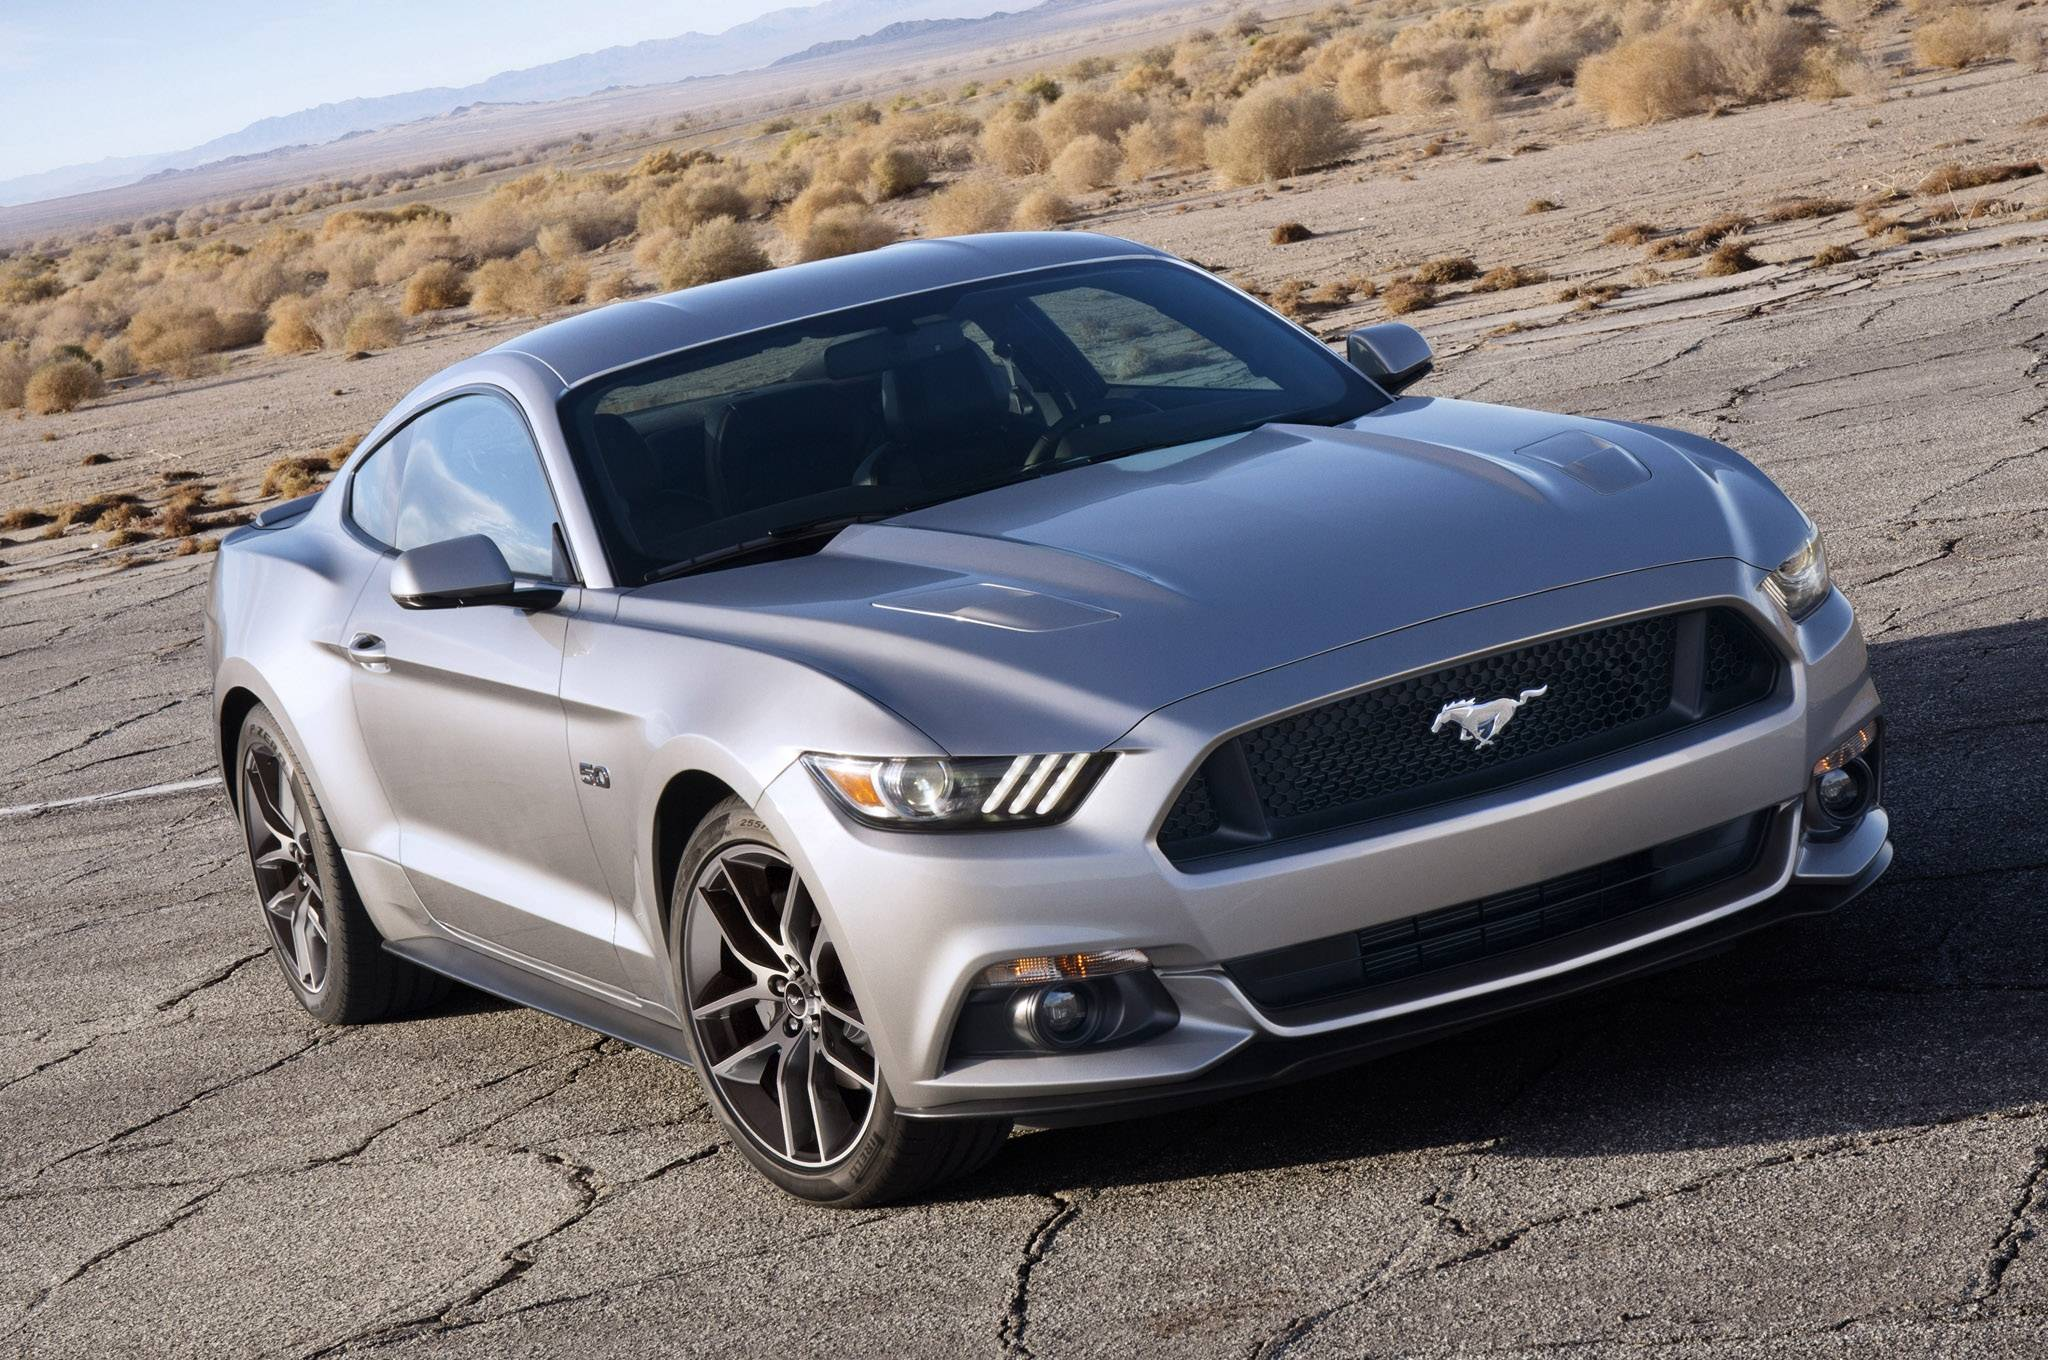 2015 Ford Mustang GT Silver Wallpaper 8734 Cool Car Wallpapers 2048x1360